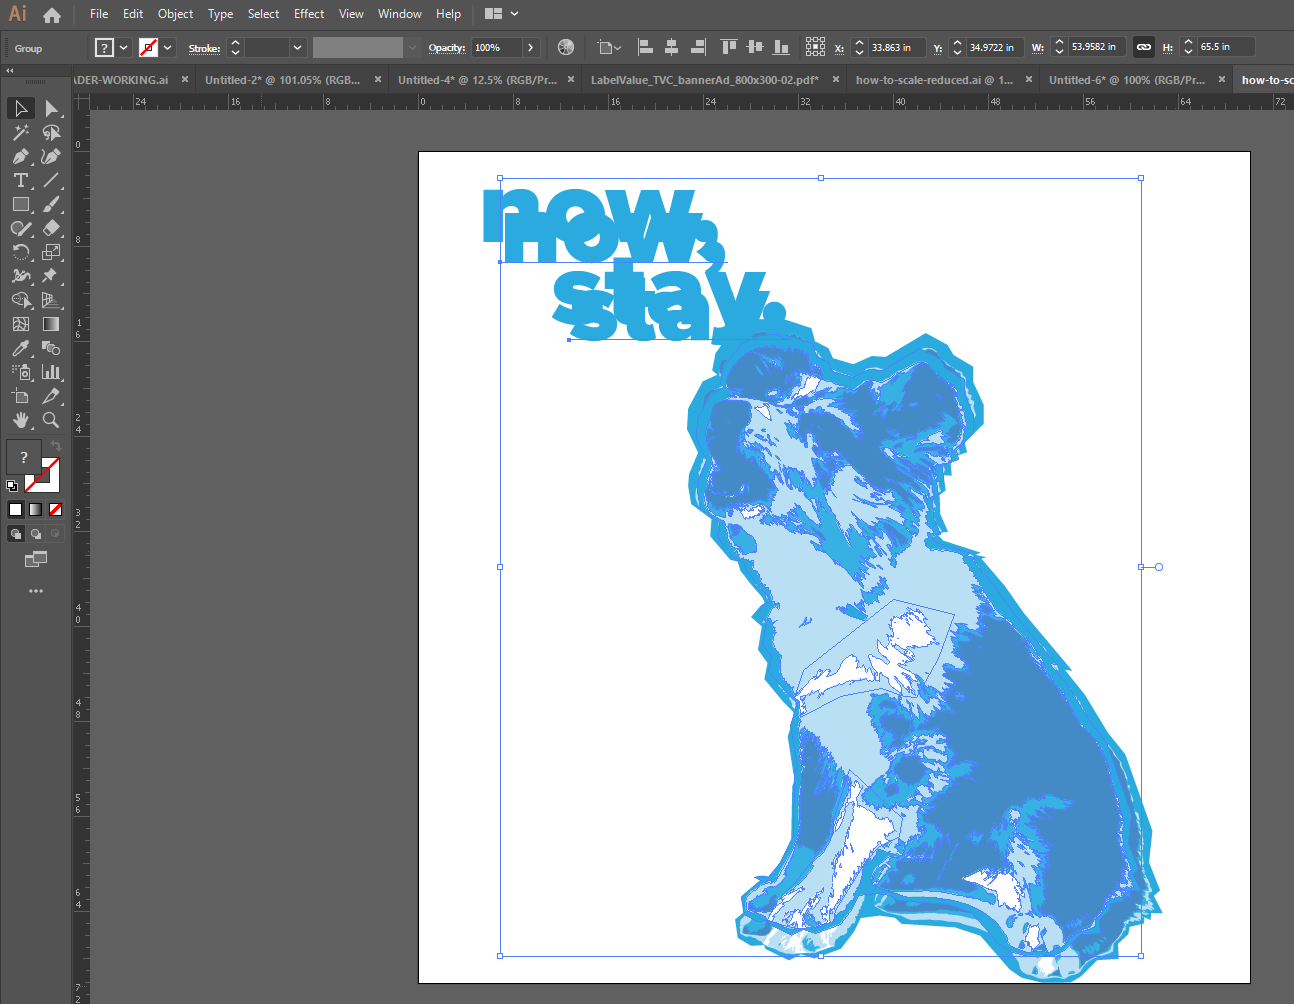 Checking scaled proportions remained the same Adobe Illustrator